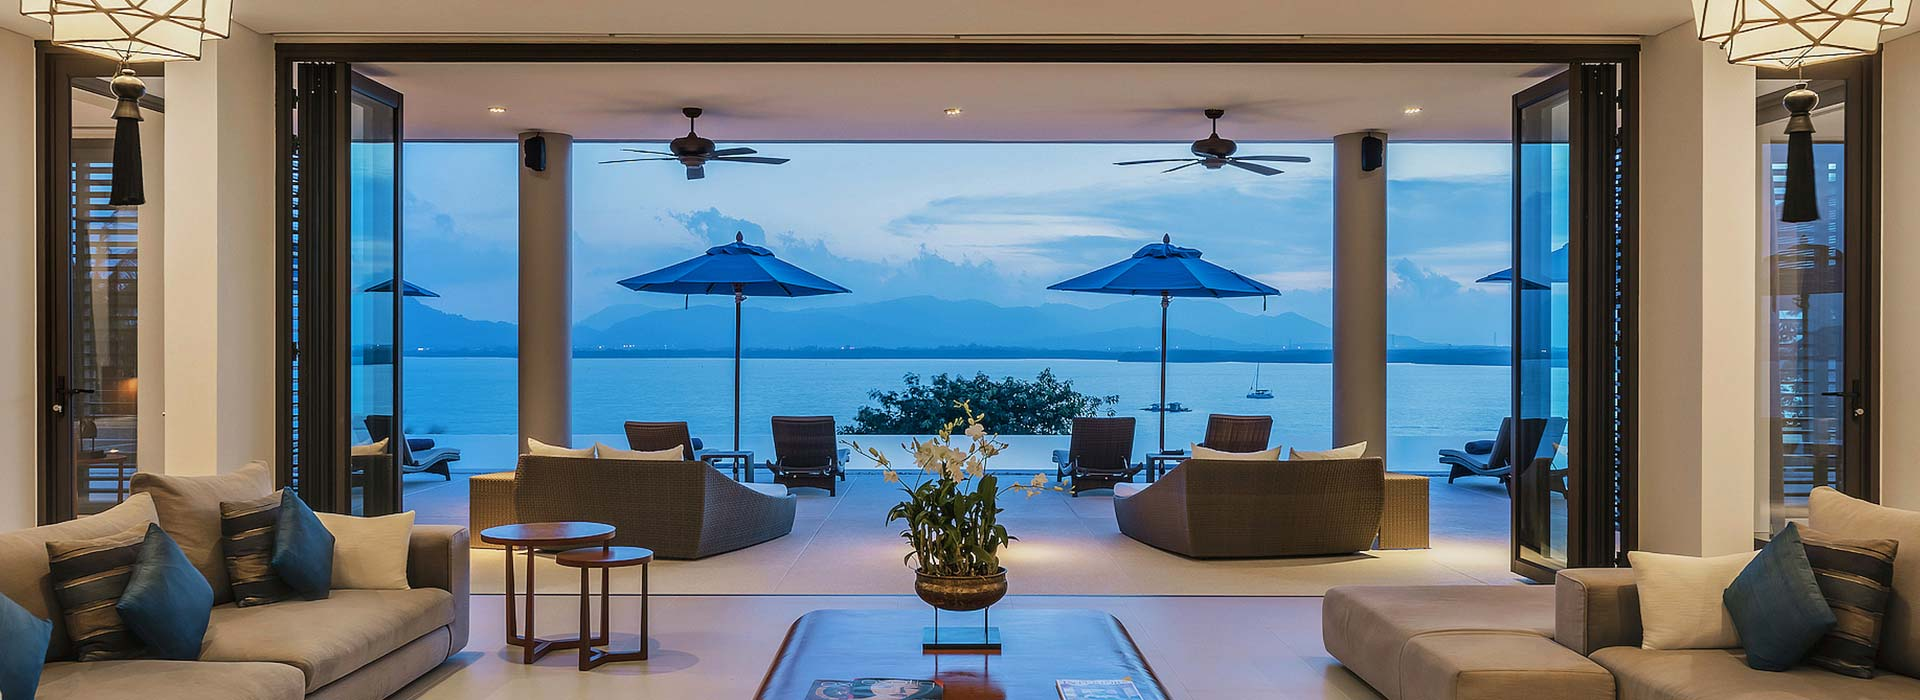 Villa Padma 4 Bedrooms<br>with private pool